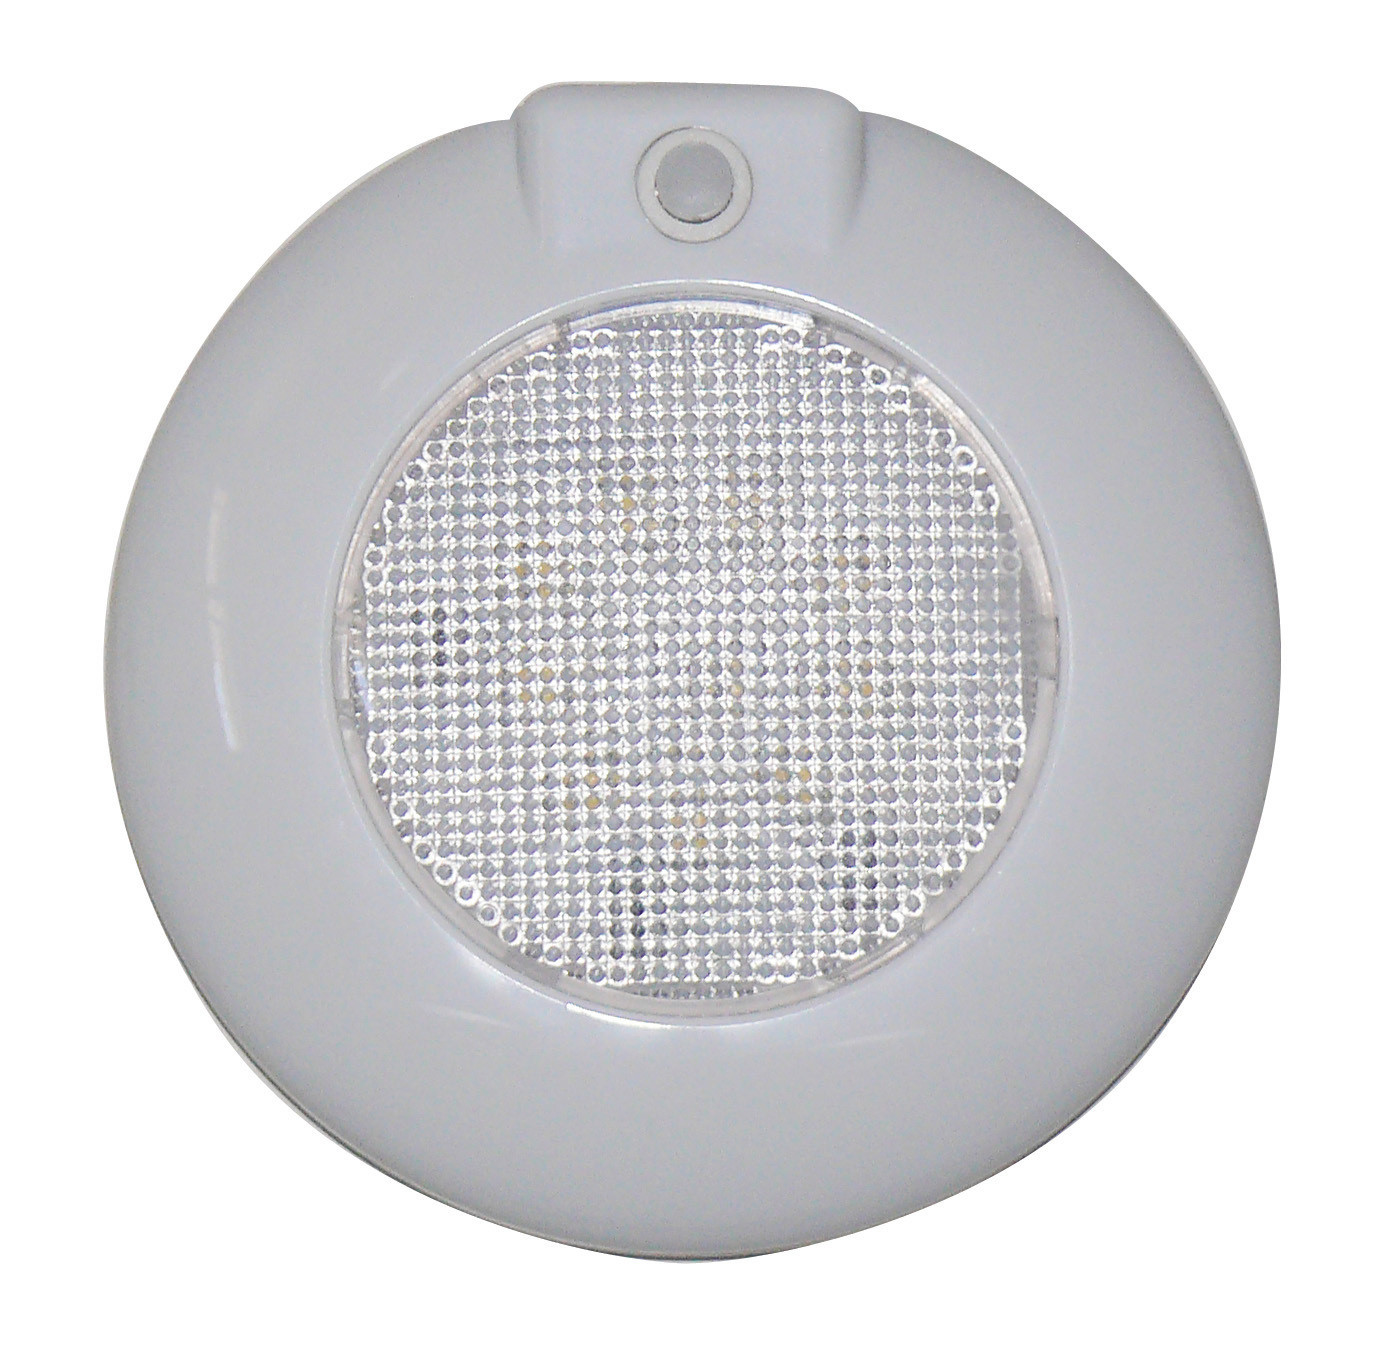 9 Diode Cost Effective LED Round Light - With Switch